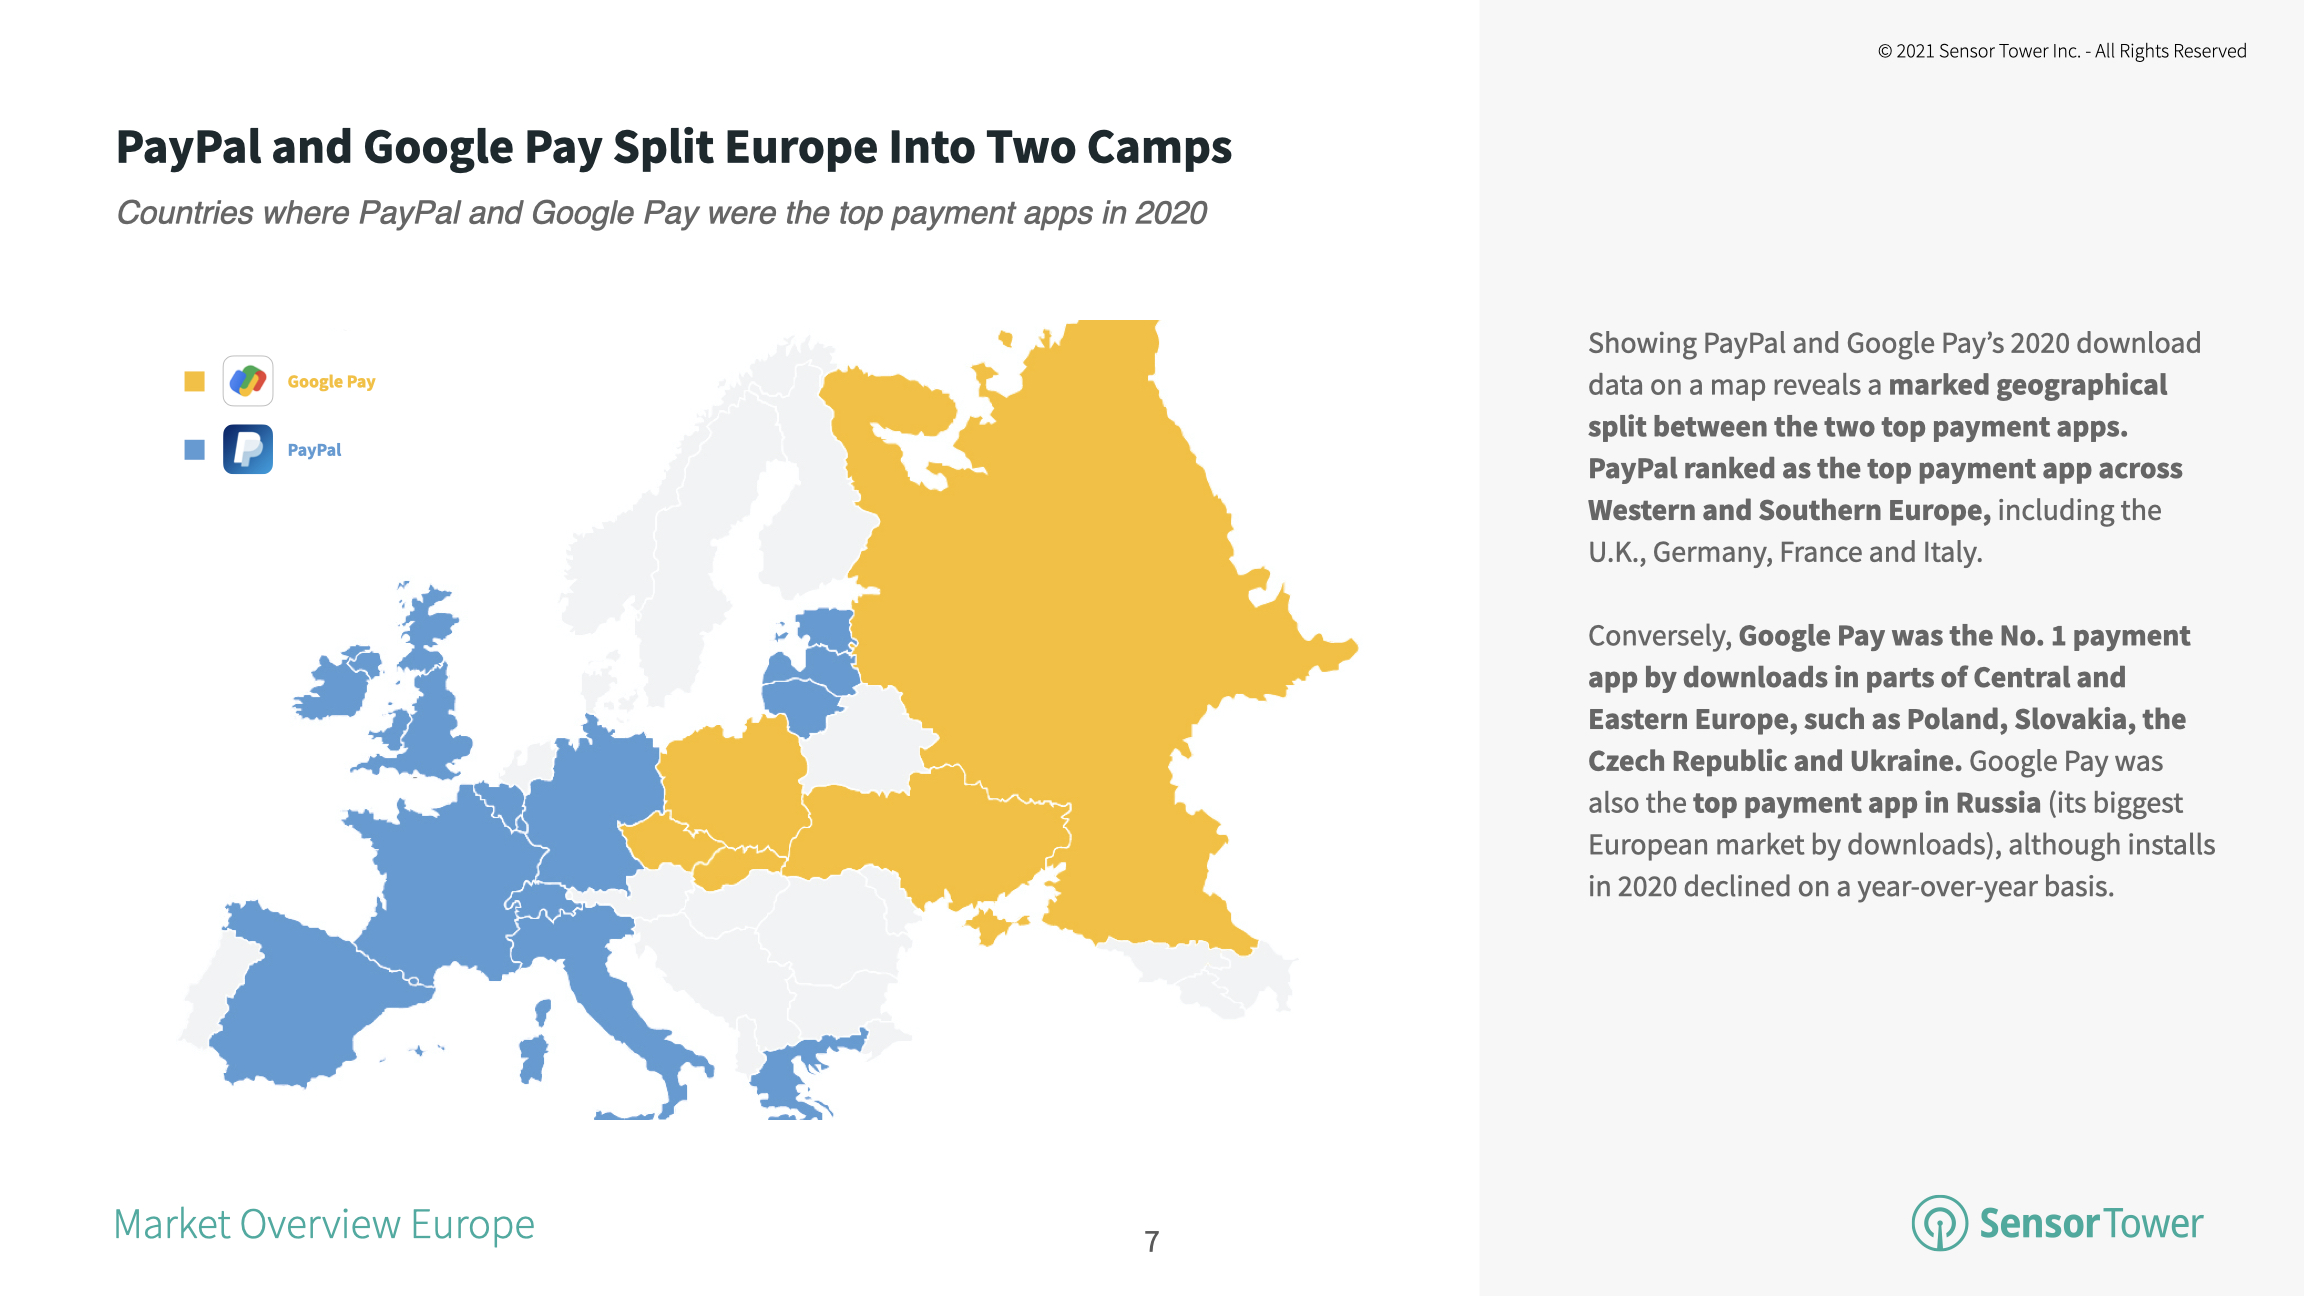 Regional breakdown of PayPal and Google Pay